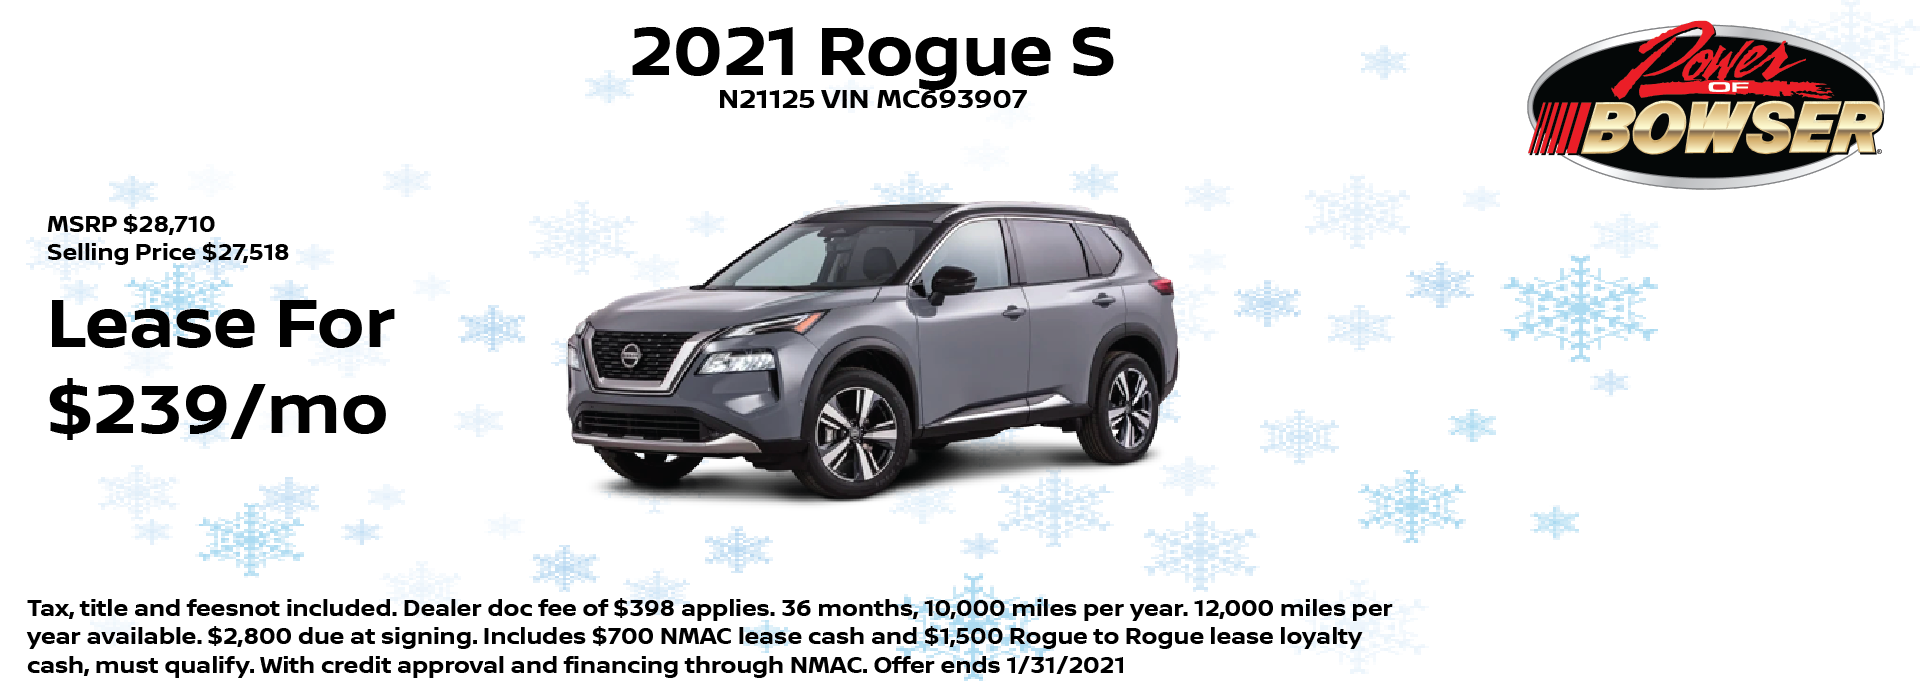 2021 Rogue Special Offer